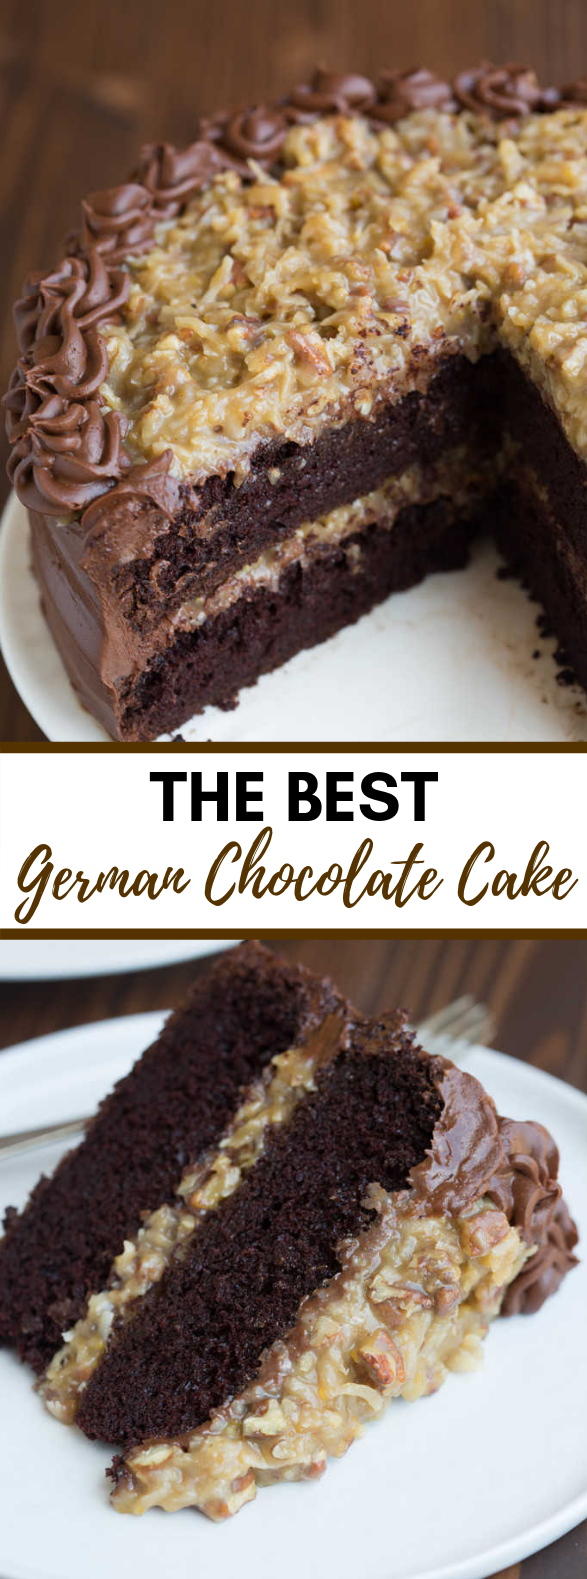 GERMAN CHOCOLATE CAKE #dessert #choco